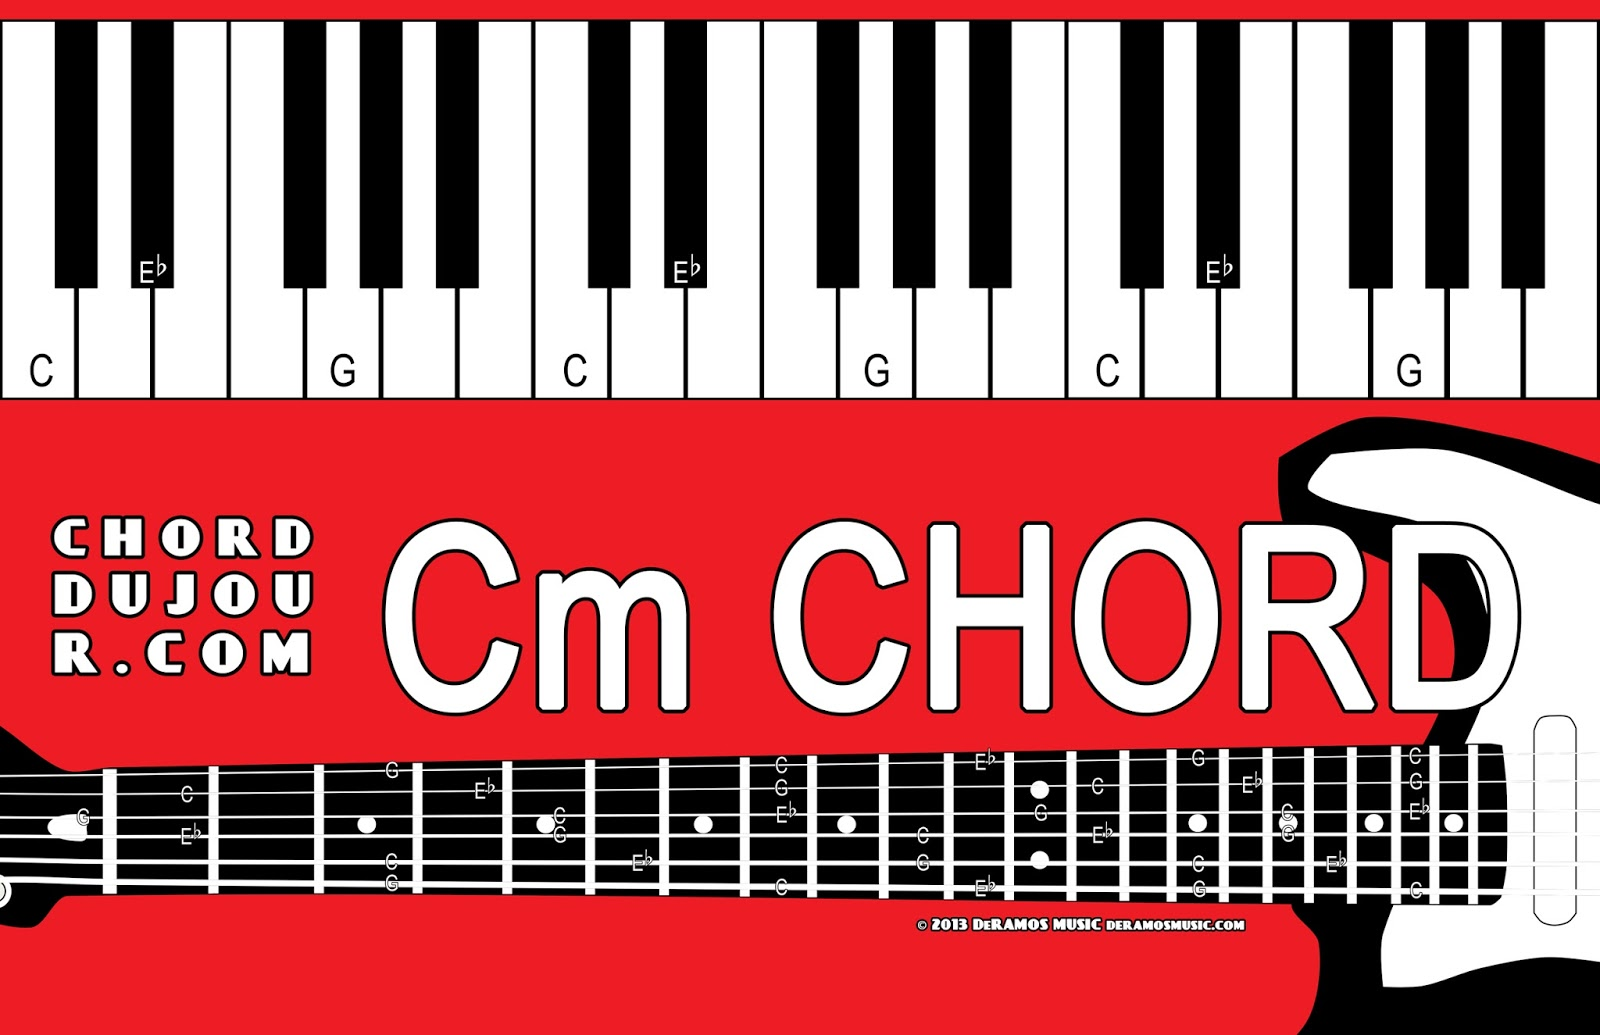 Chord du jour dictionary cm chord dictionary cm chord hexwebz Gallery